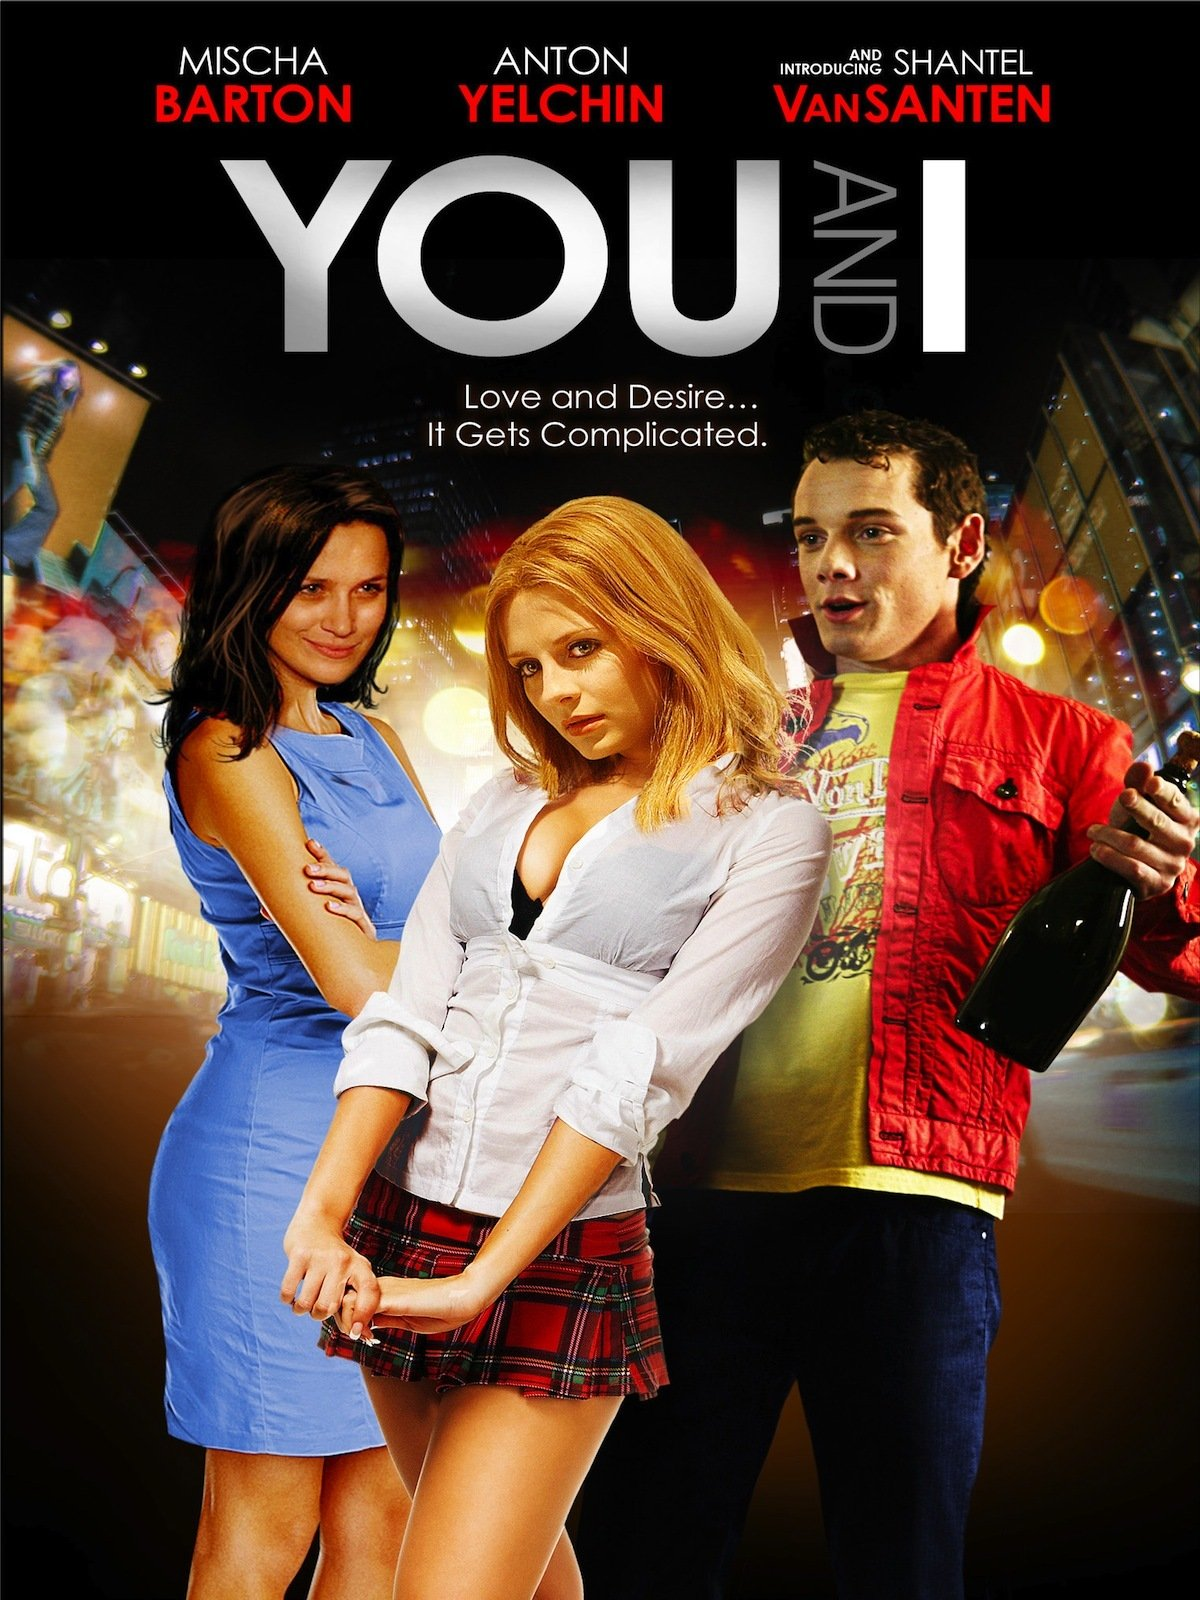 Amazoncom You And I Mischa Barton Anton Yelchin Shantel